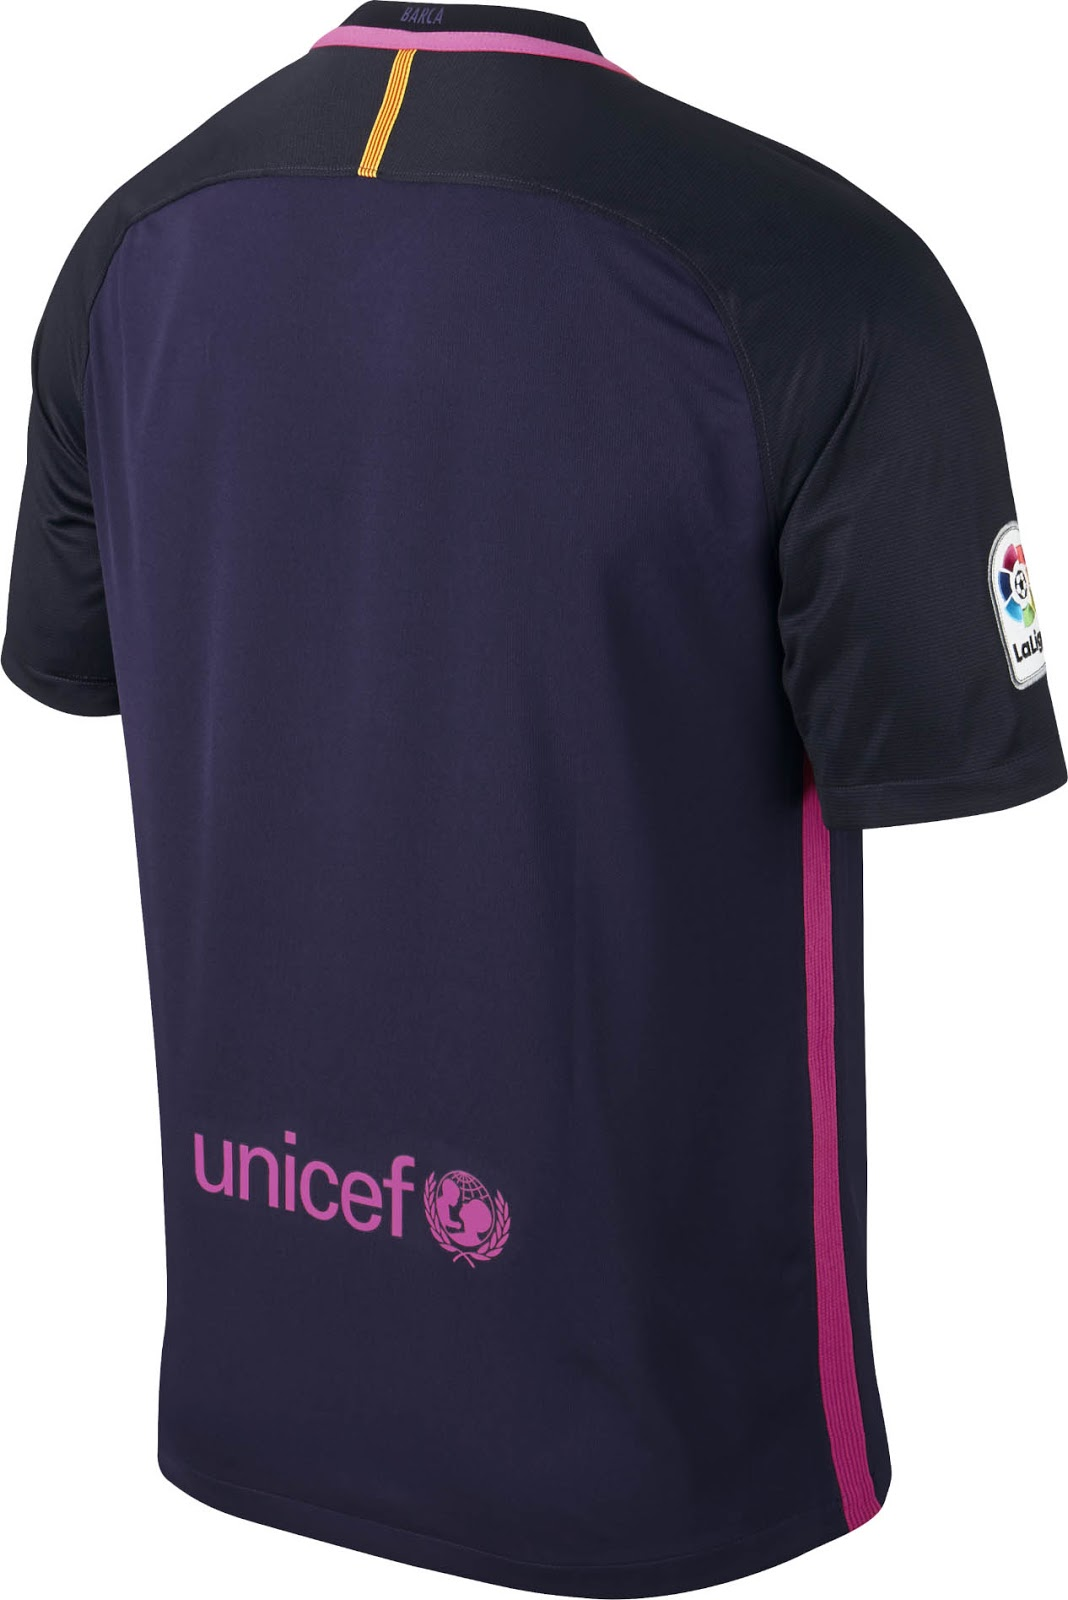 08542acf132 ... Barcelona Away Kit 2016-17 Back